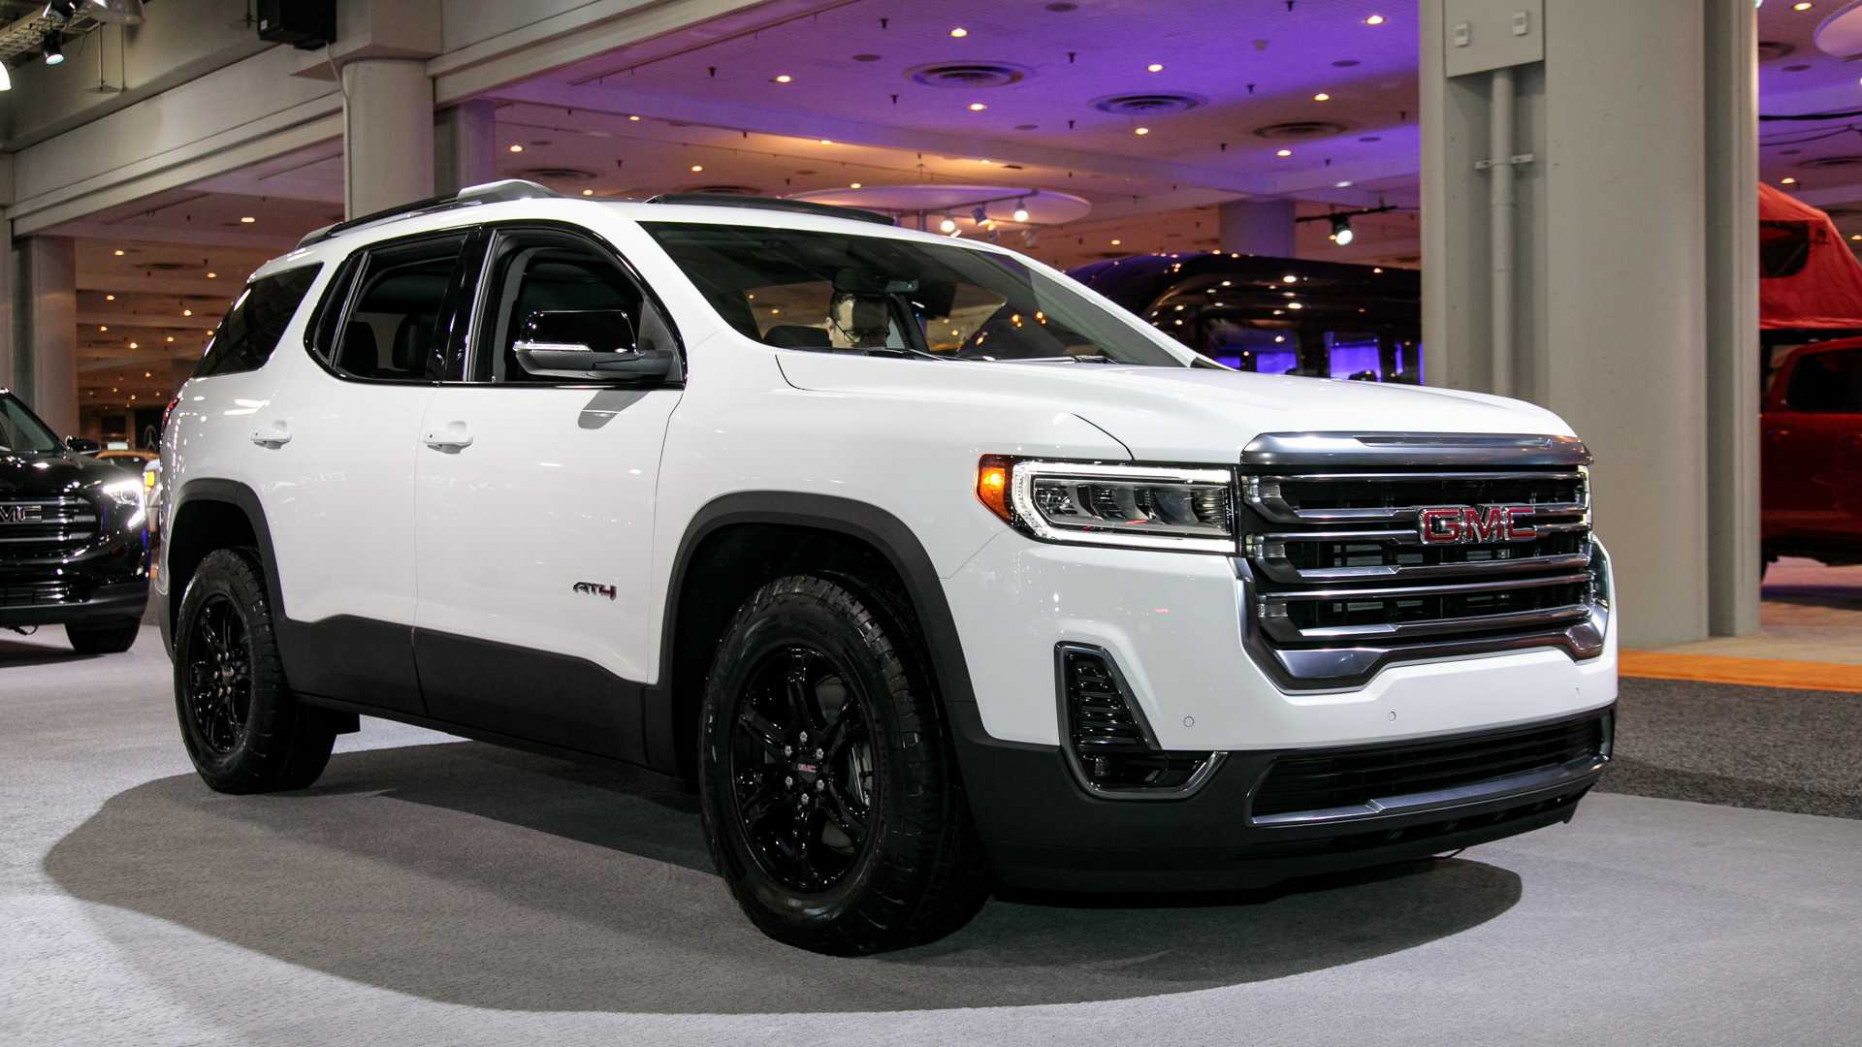 7 GMC Acadia AT7 Reportedly Starts At $72,795 - 2020 gmc models